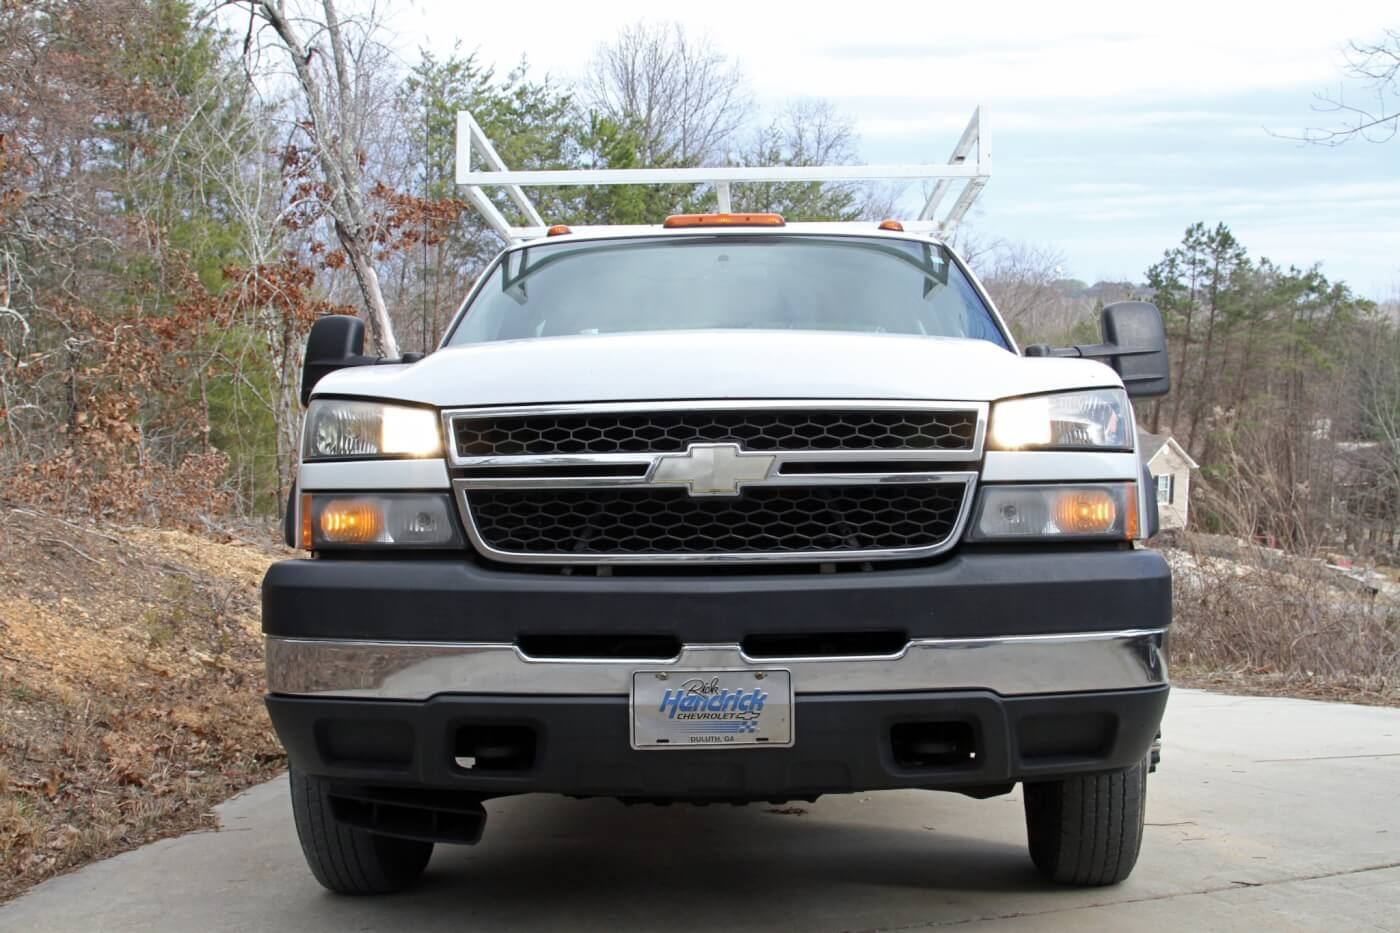 1/2. From the factory GM uses separate bulbs for low beam (photo 01) and high beam (photo 02) operation but does not keep all four bulbs on.